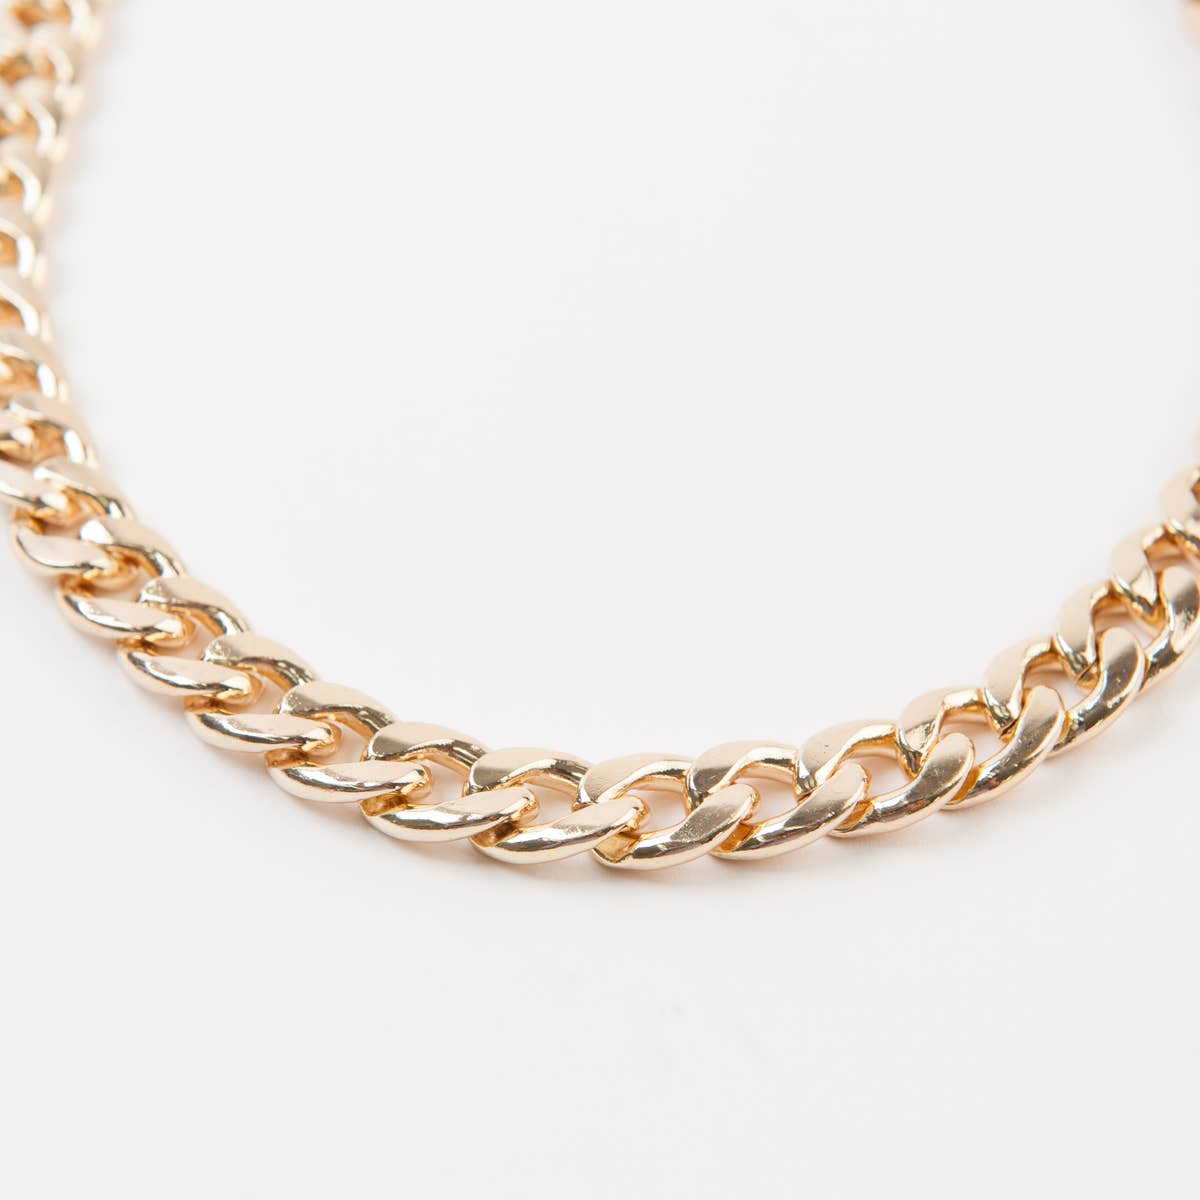 Braided Gold Chain Belt